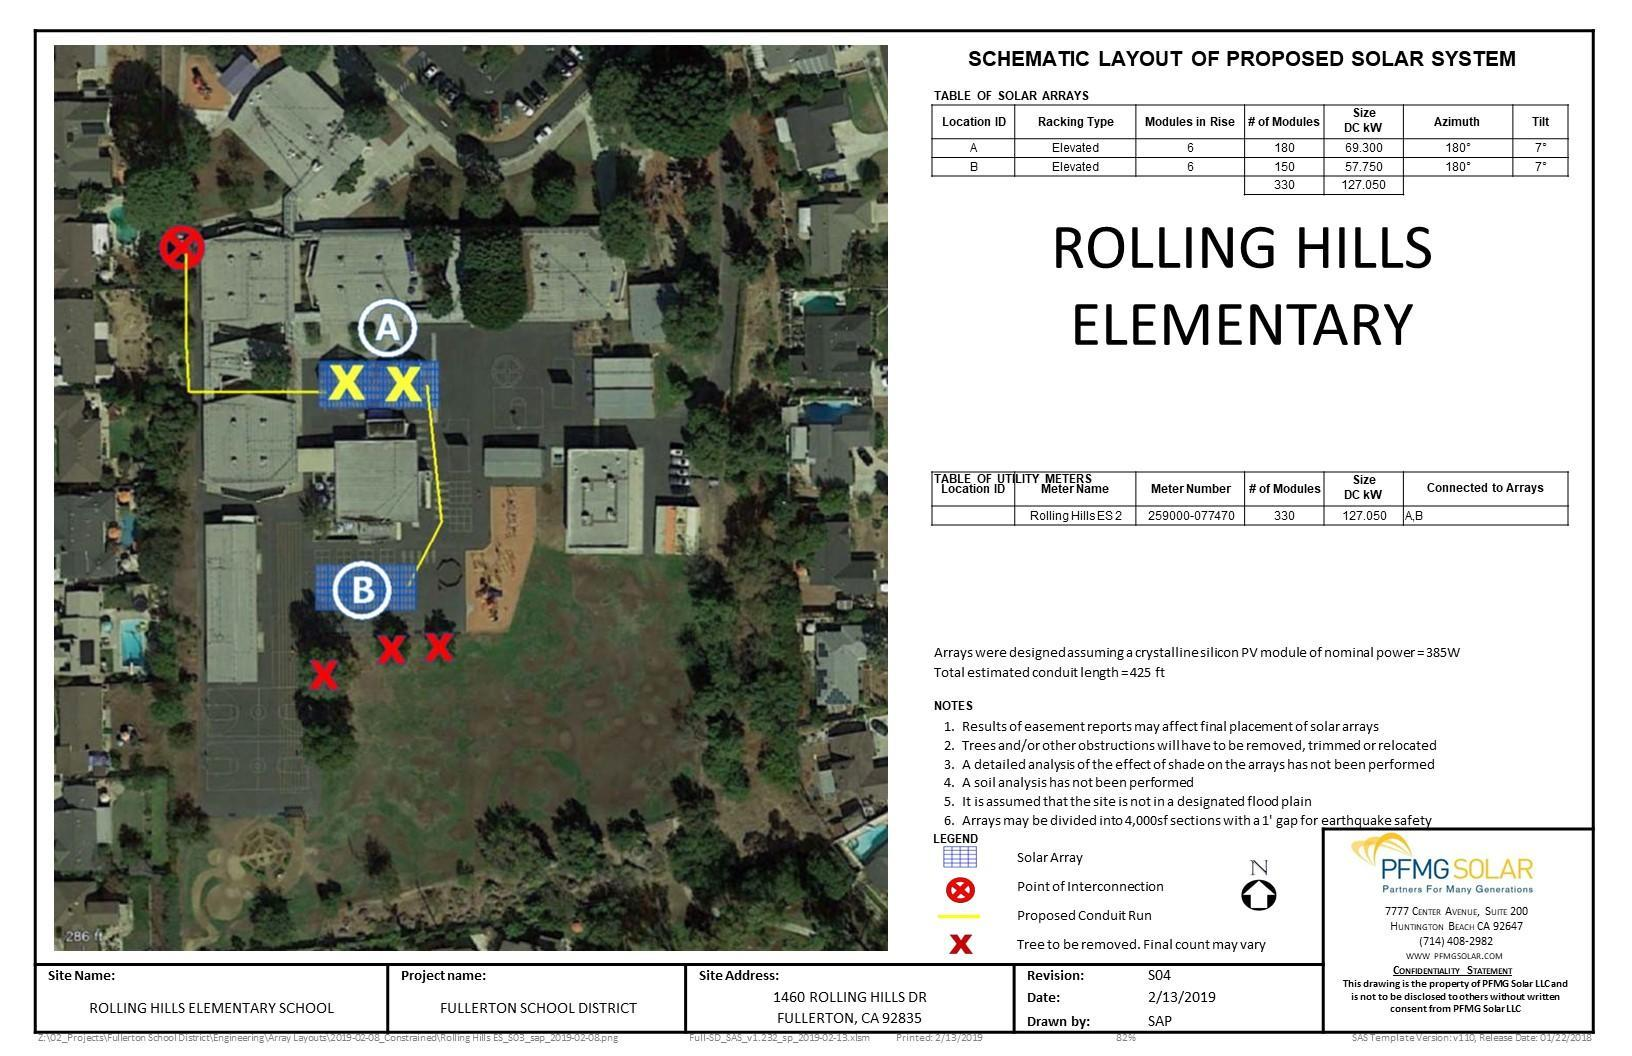 Rolling Hills Elementary Schematic Layout of Proposed Solar System